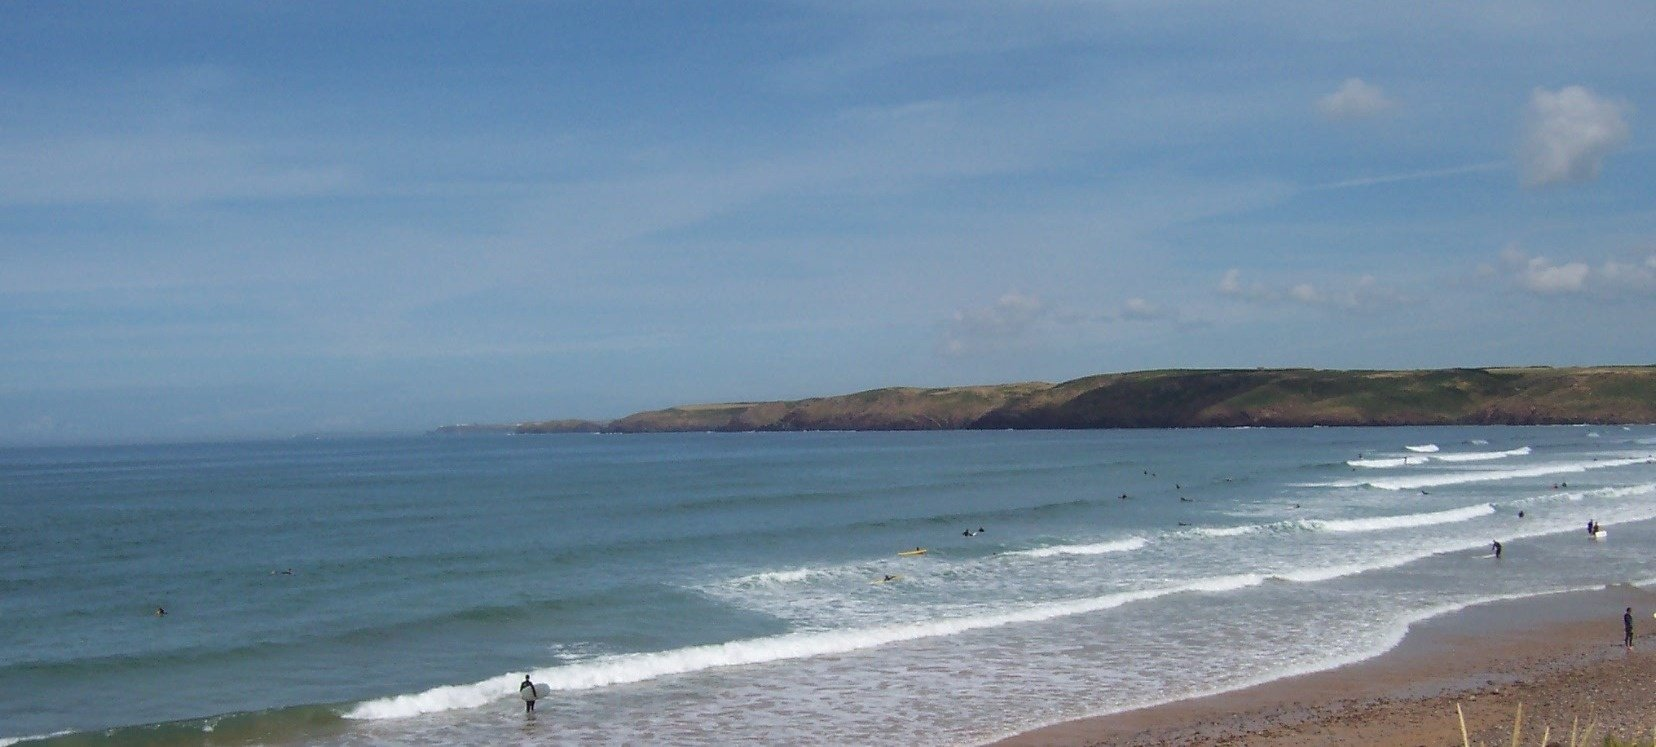 Mark Drifter's photo of Freshwater West